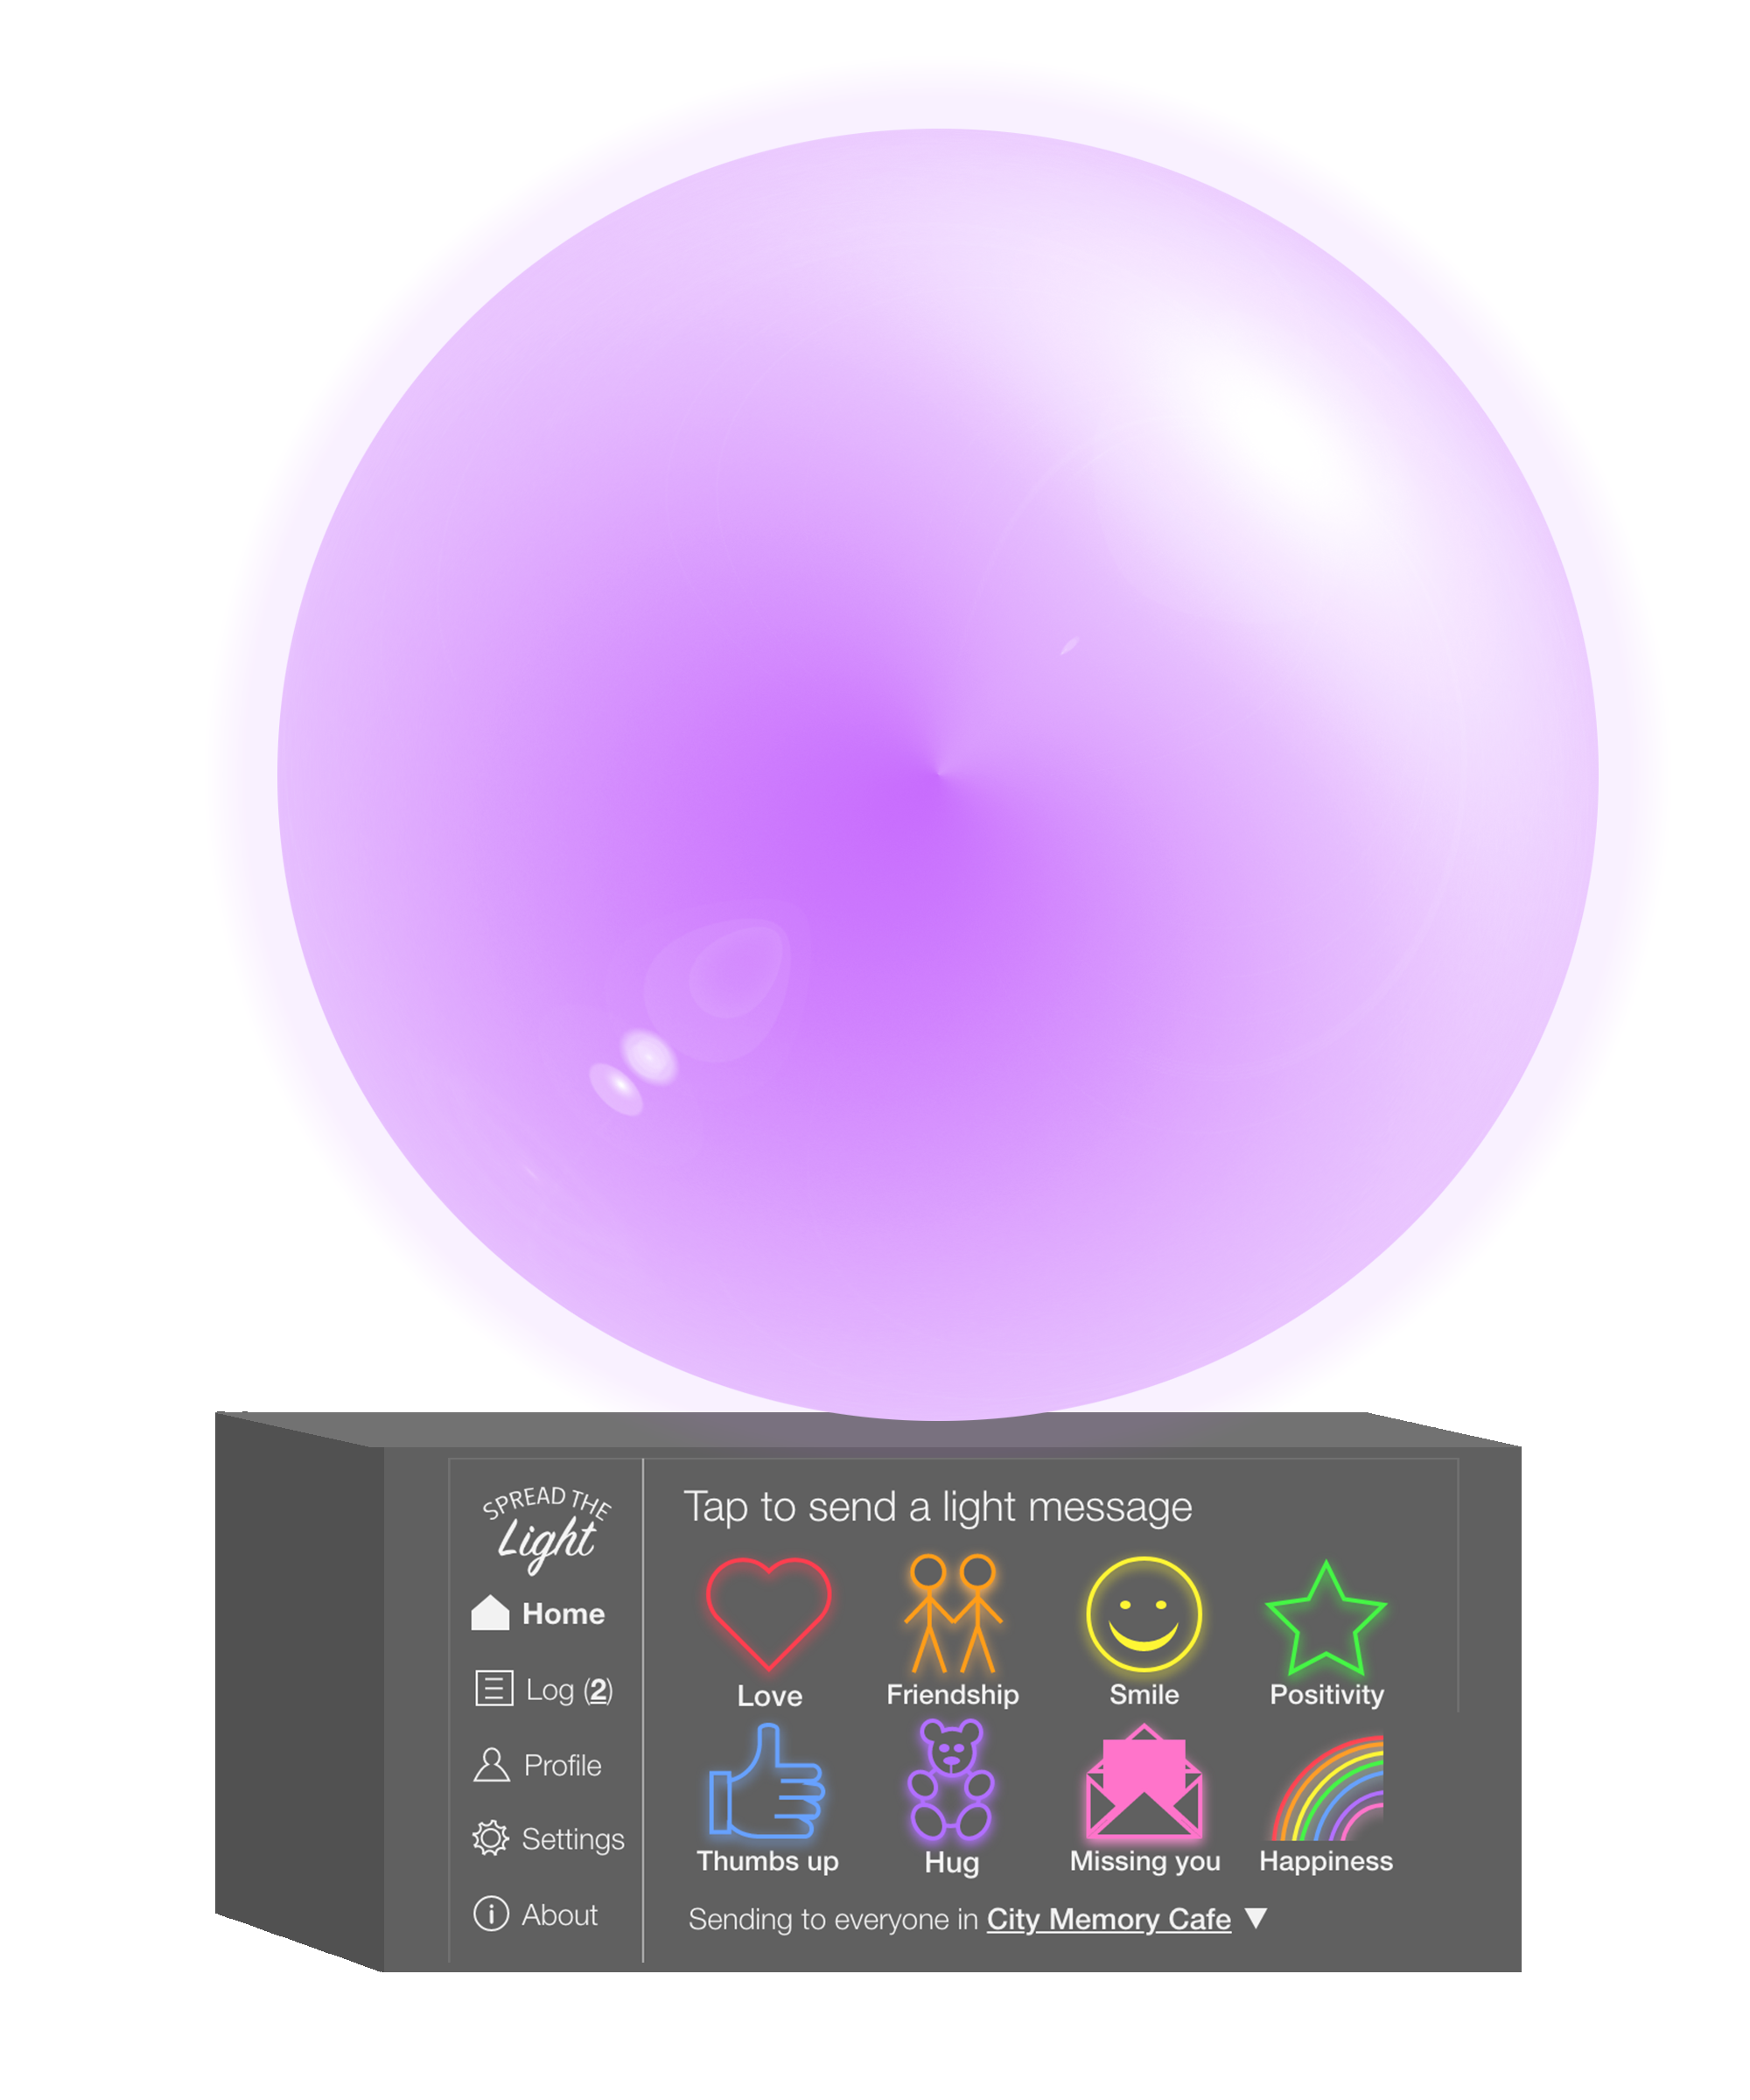 Spread the light device with purple light meaning Hug message was received.